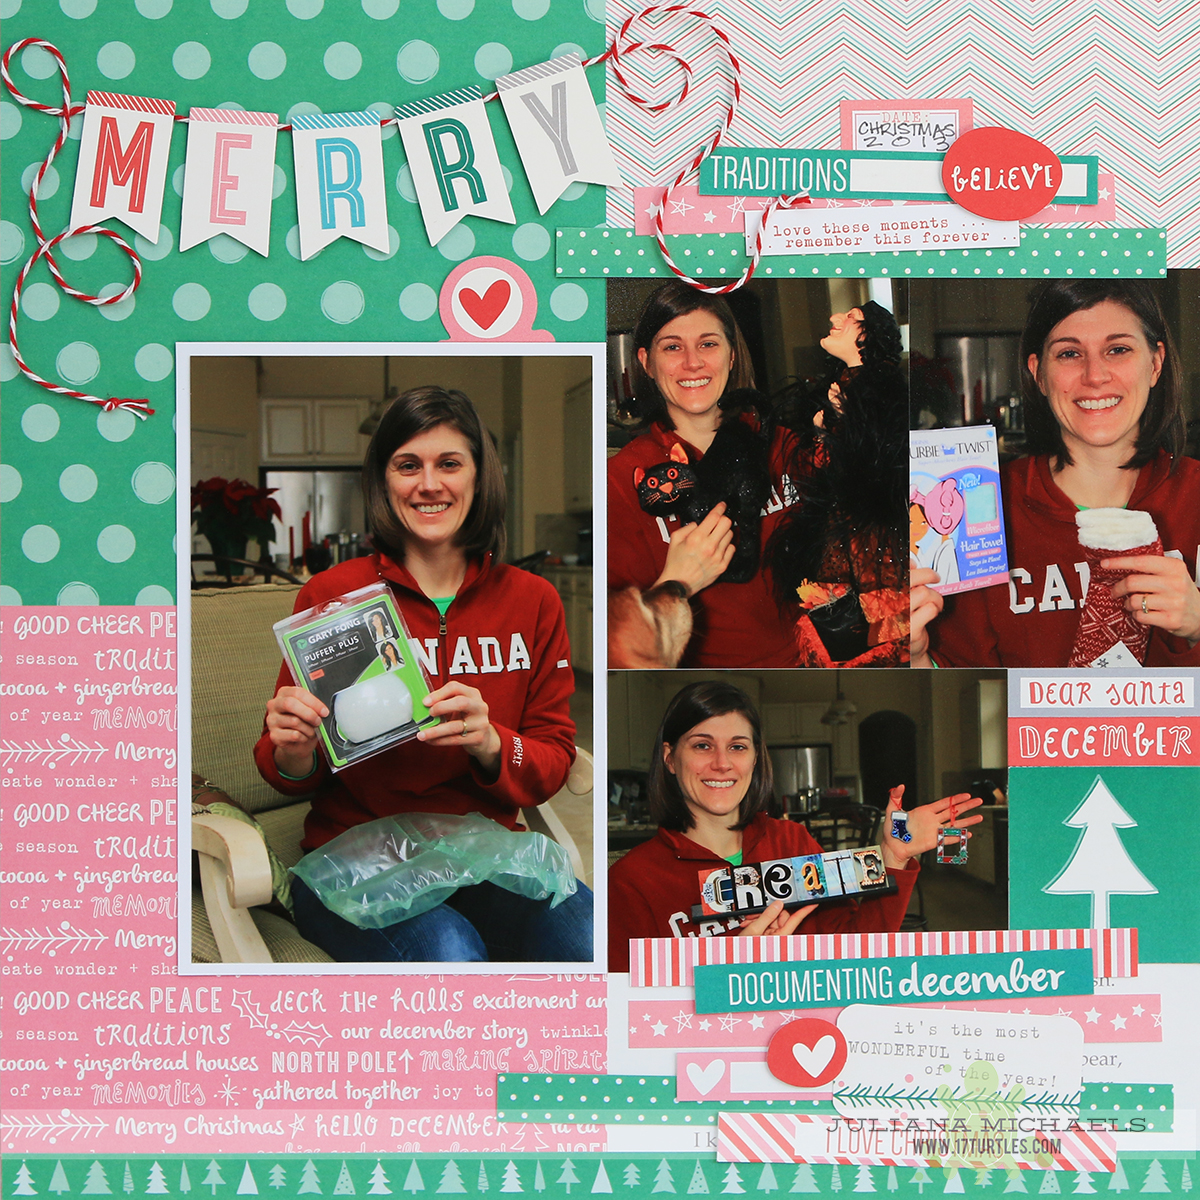 Merry Christmas Scrapbook Page by Juliana Michaels for Elle's Studio featuring Good Cheer